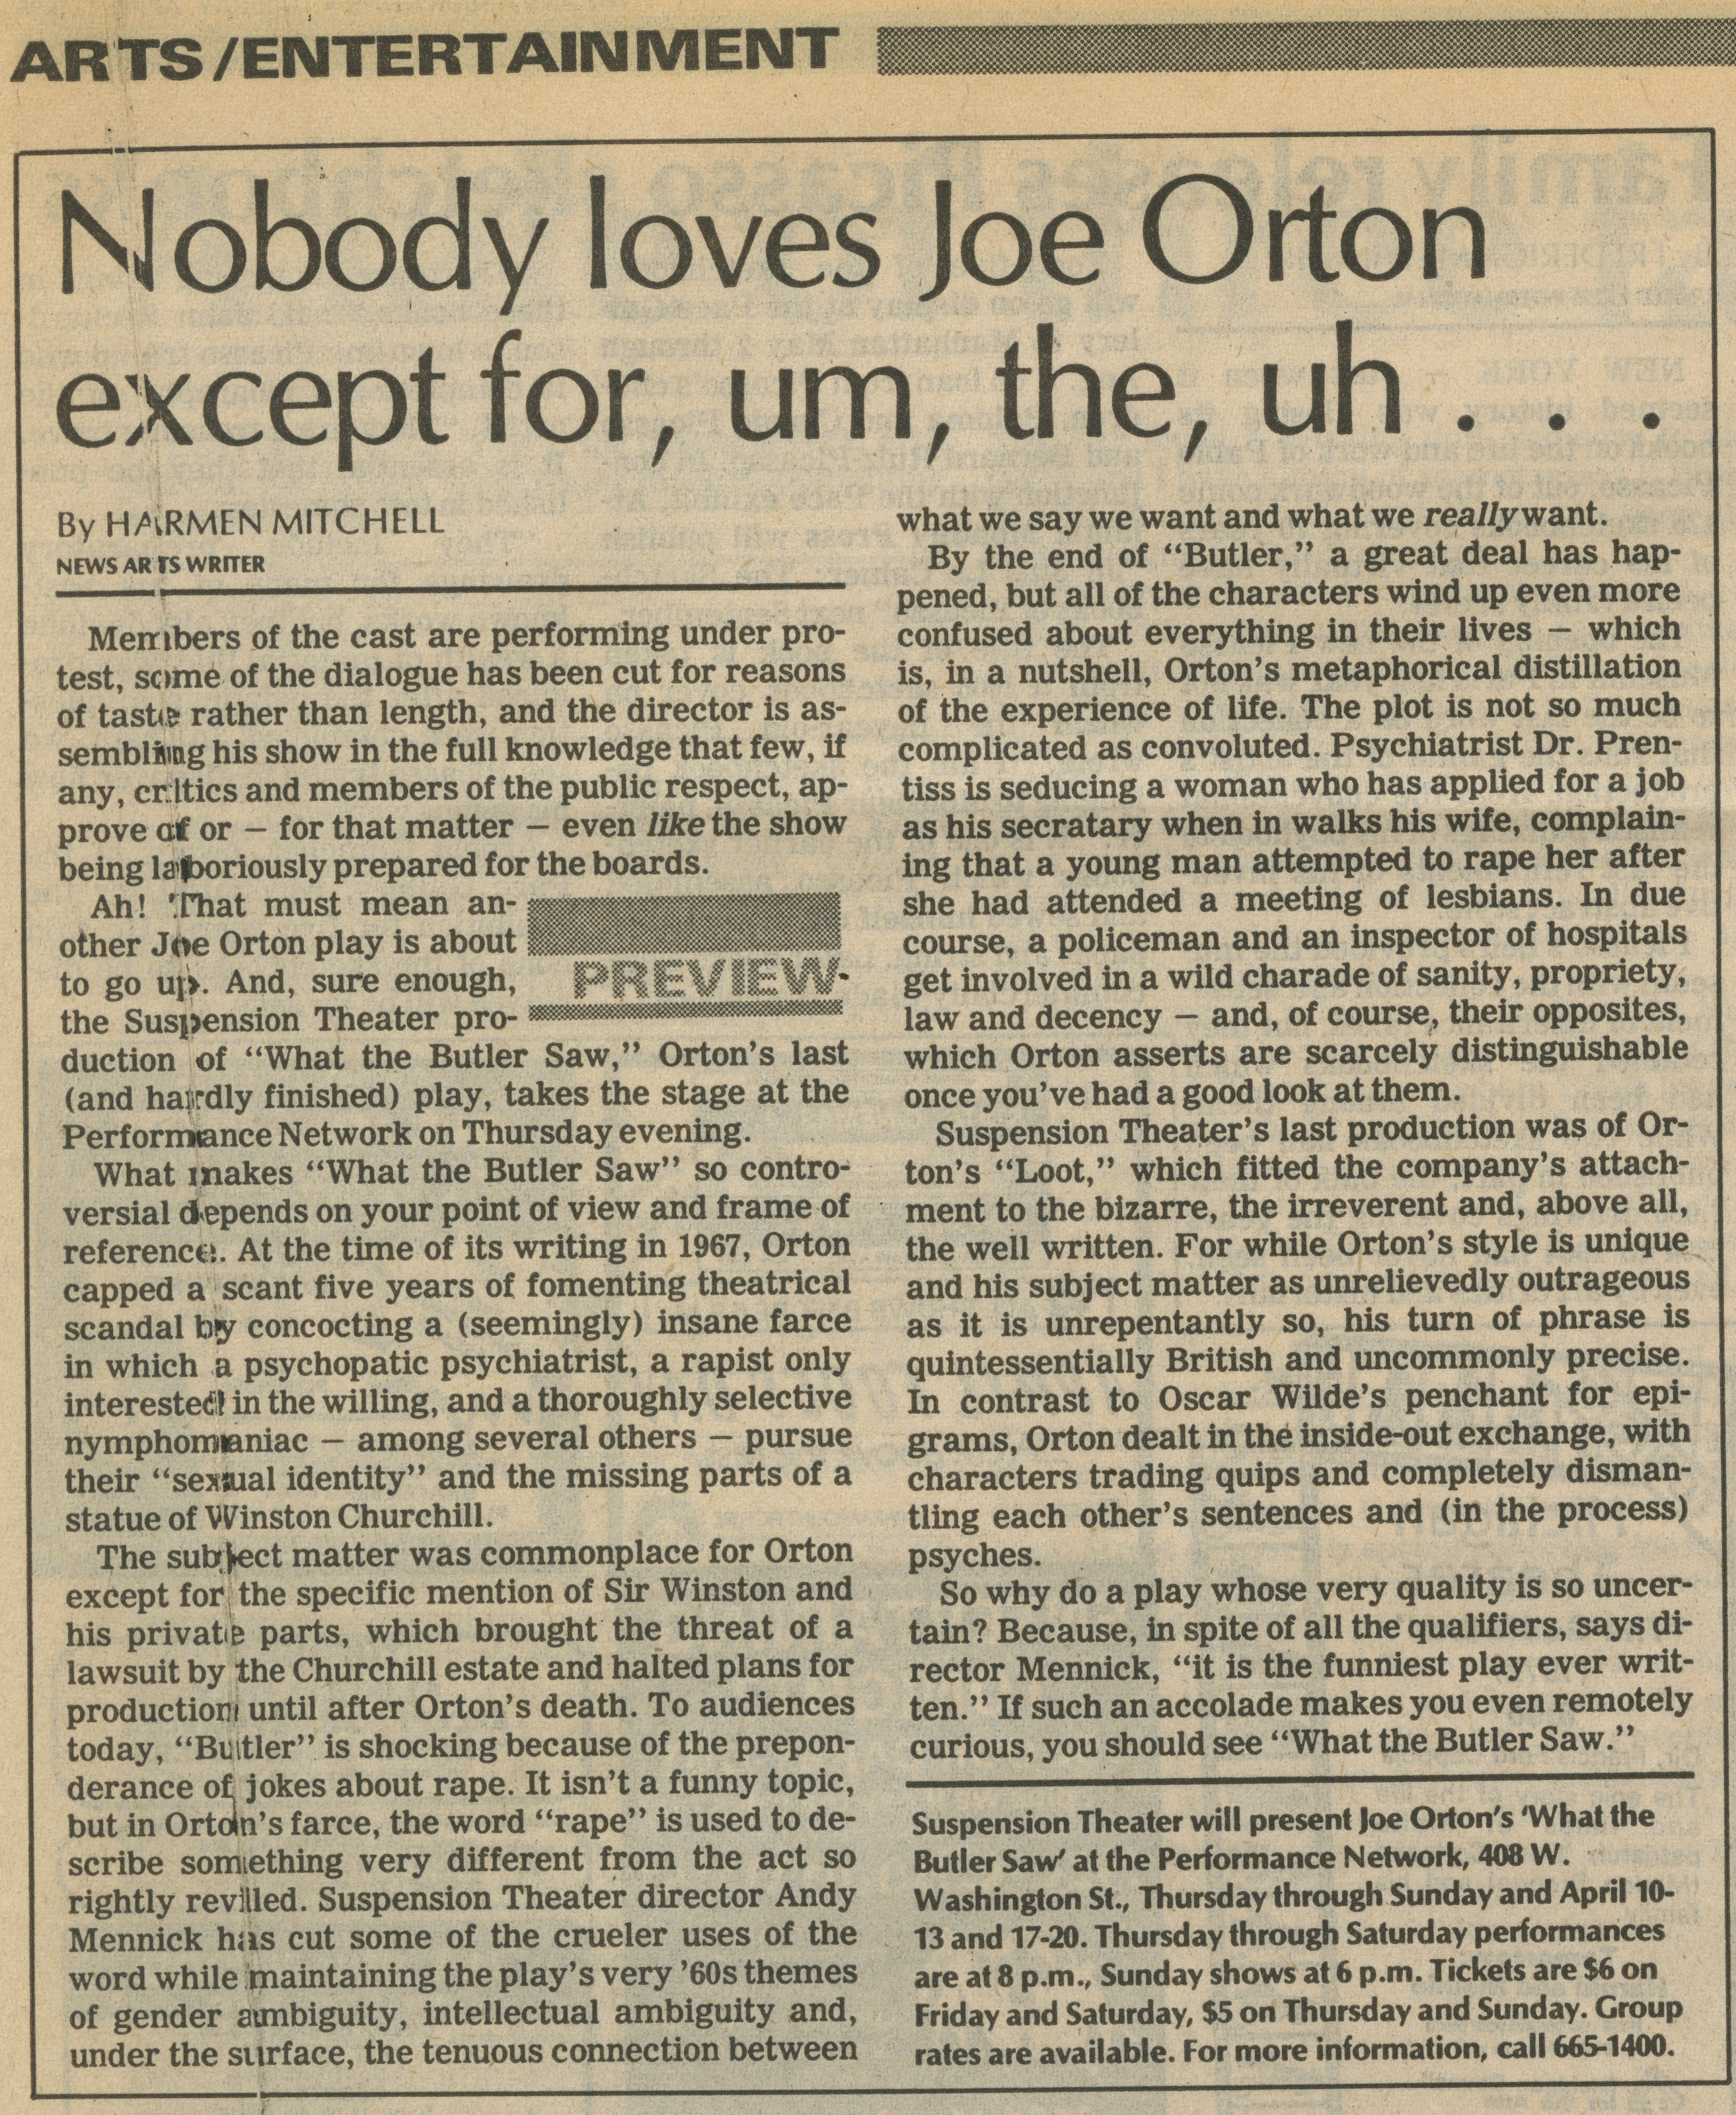 Nobody loves Joe Orton except for, um, the, uh... image